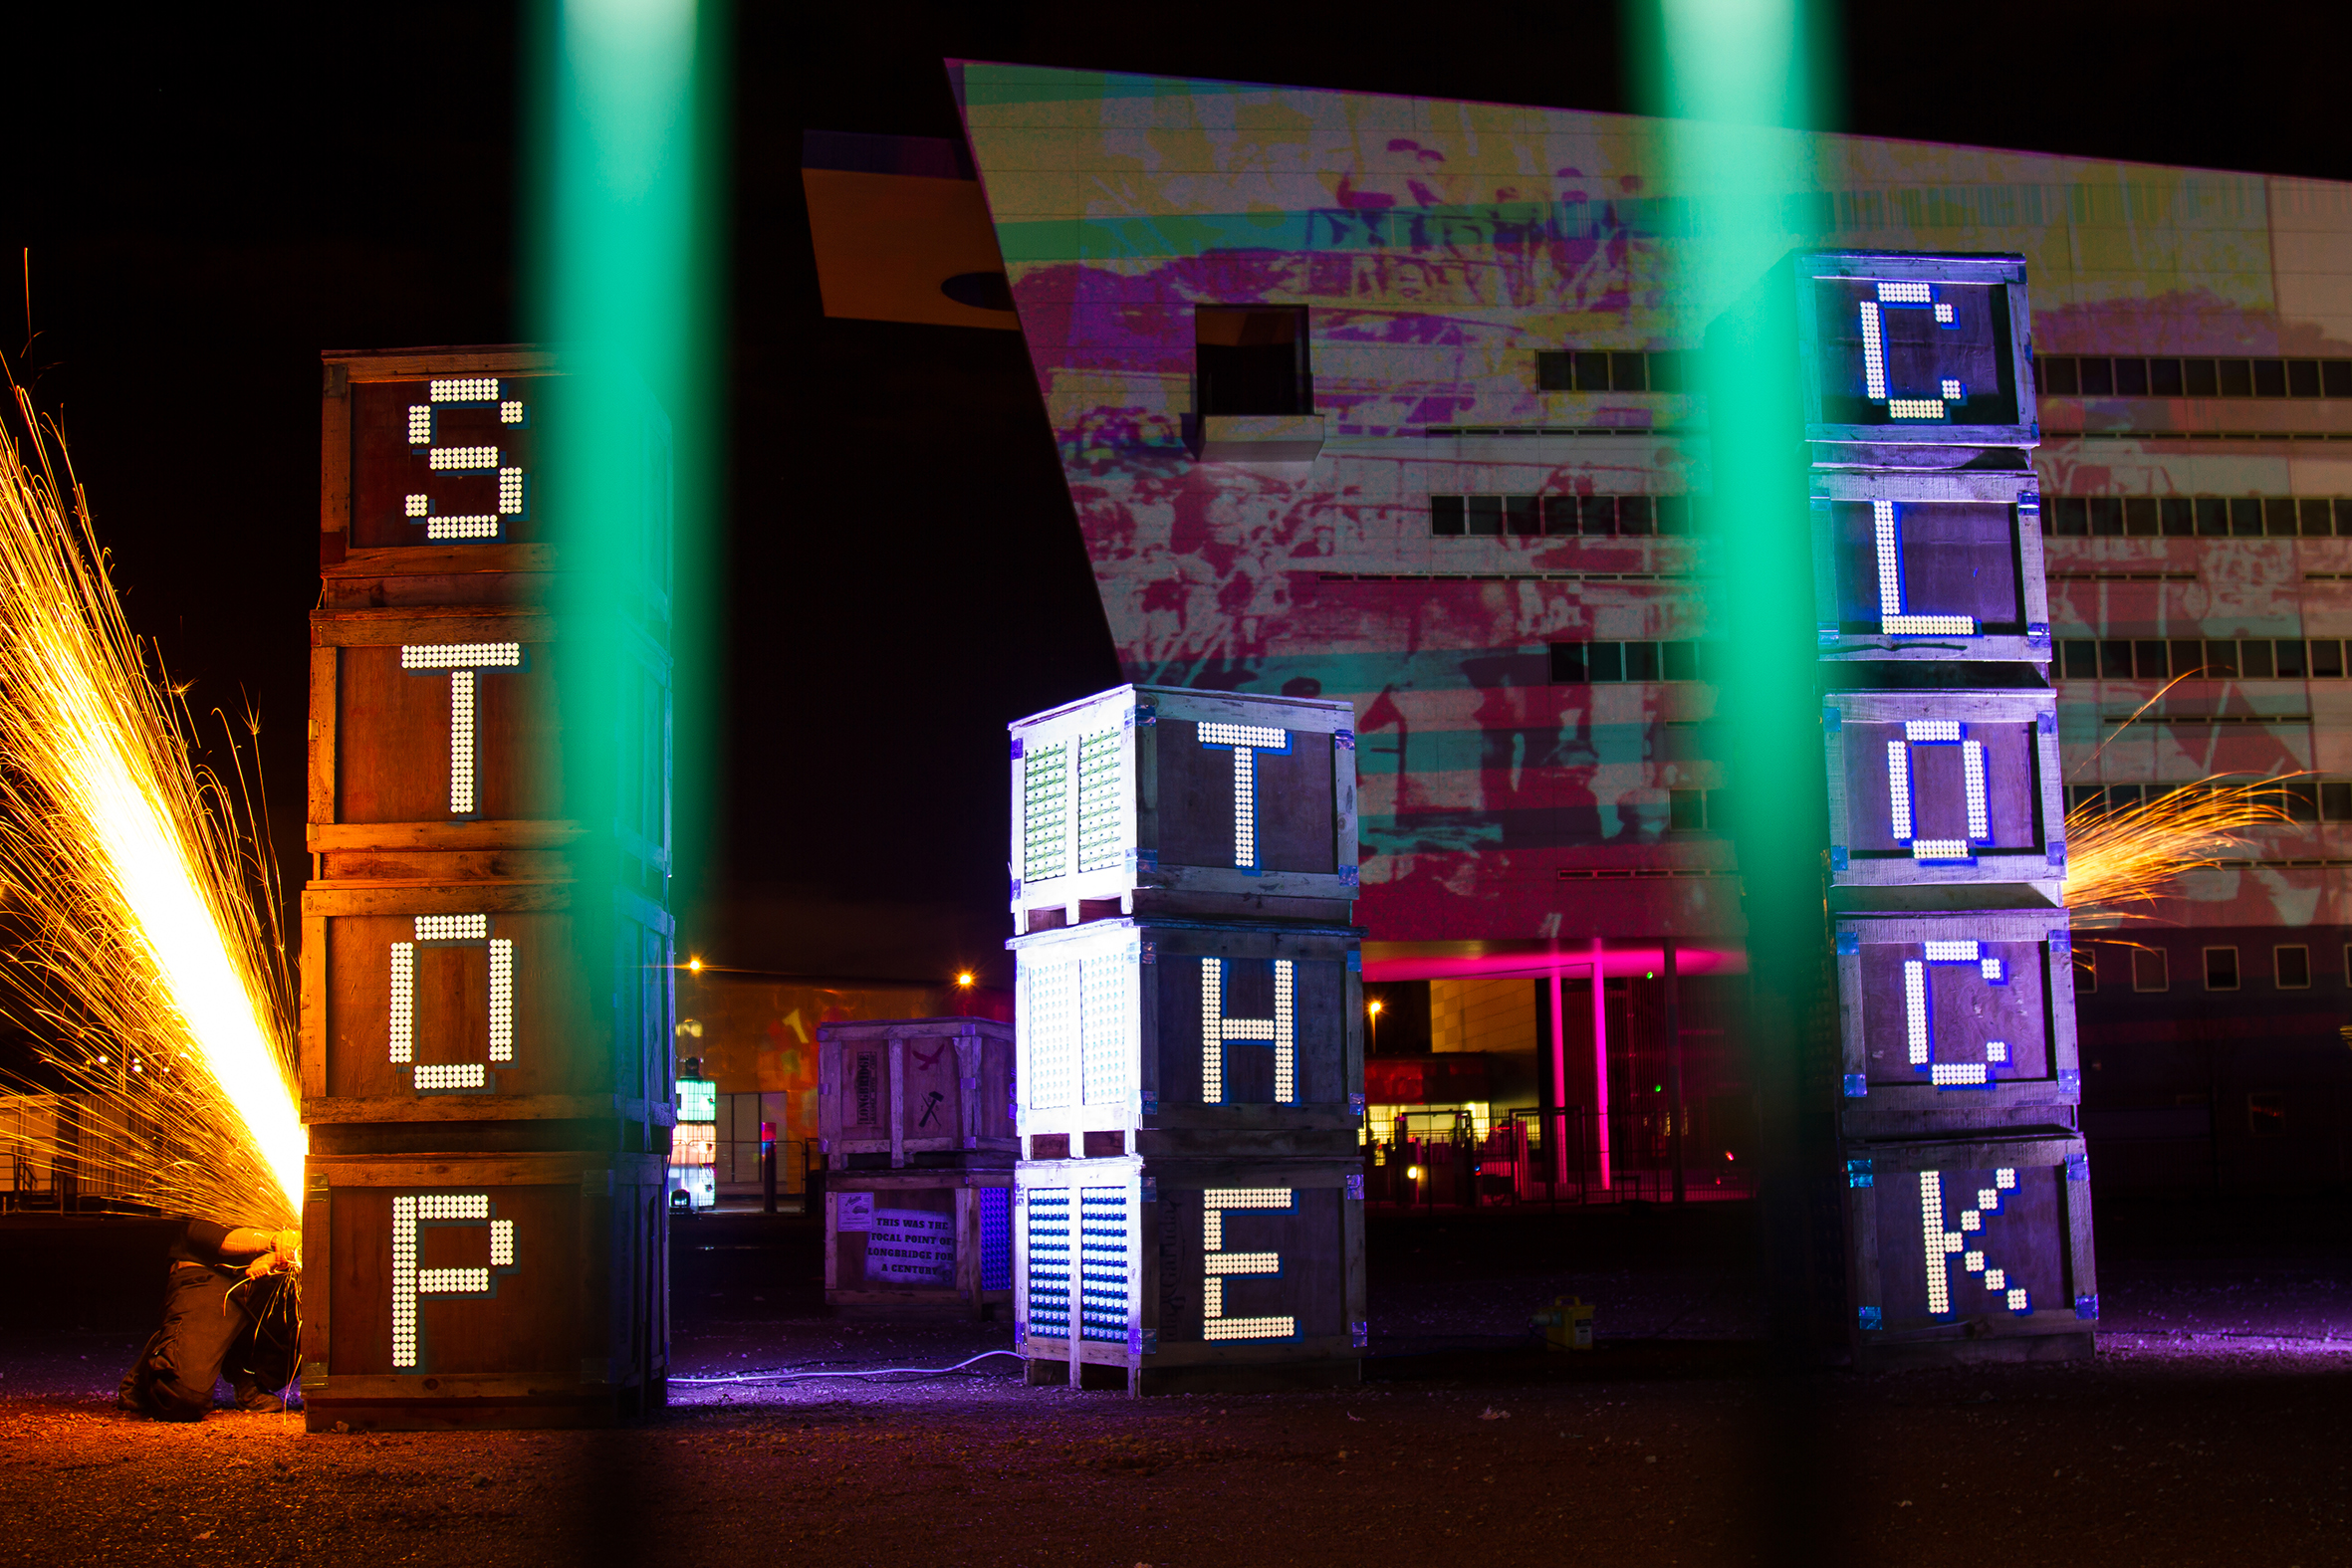 'Goods In' collaboration with Luke Perry, work created for Longbridge Light Festival 2014, photography by Pete Sloan